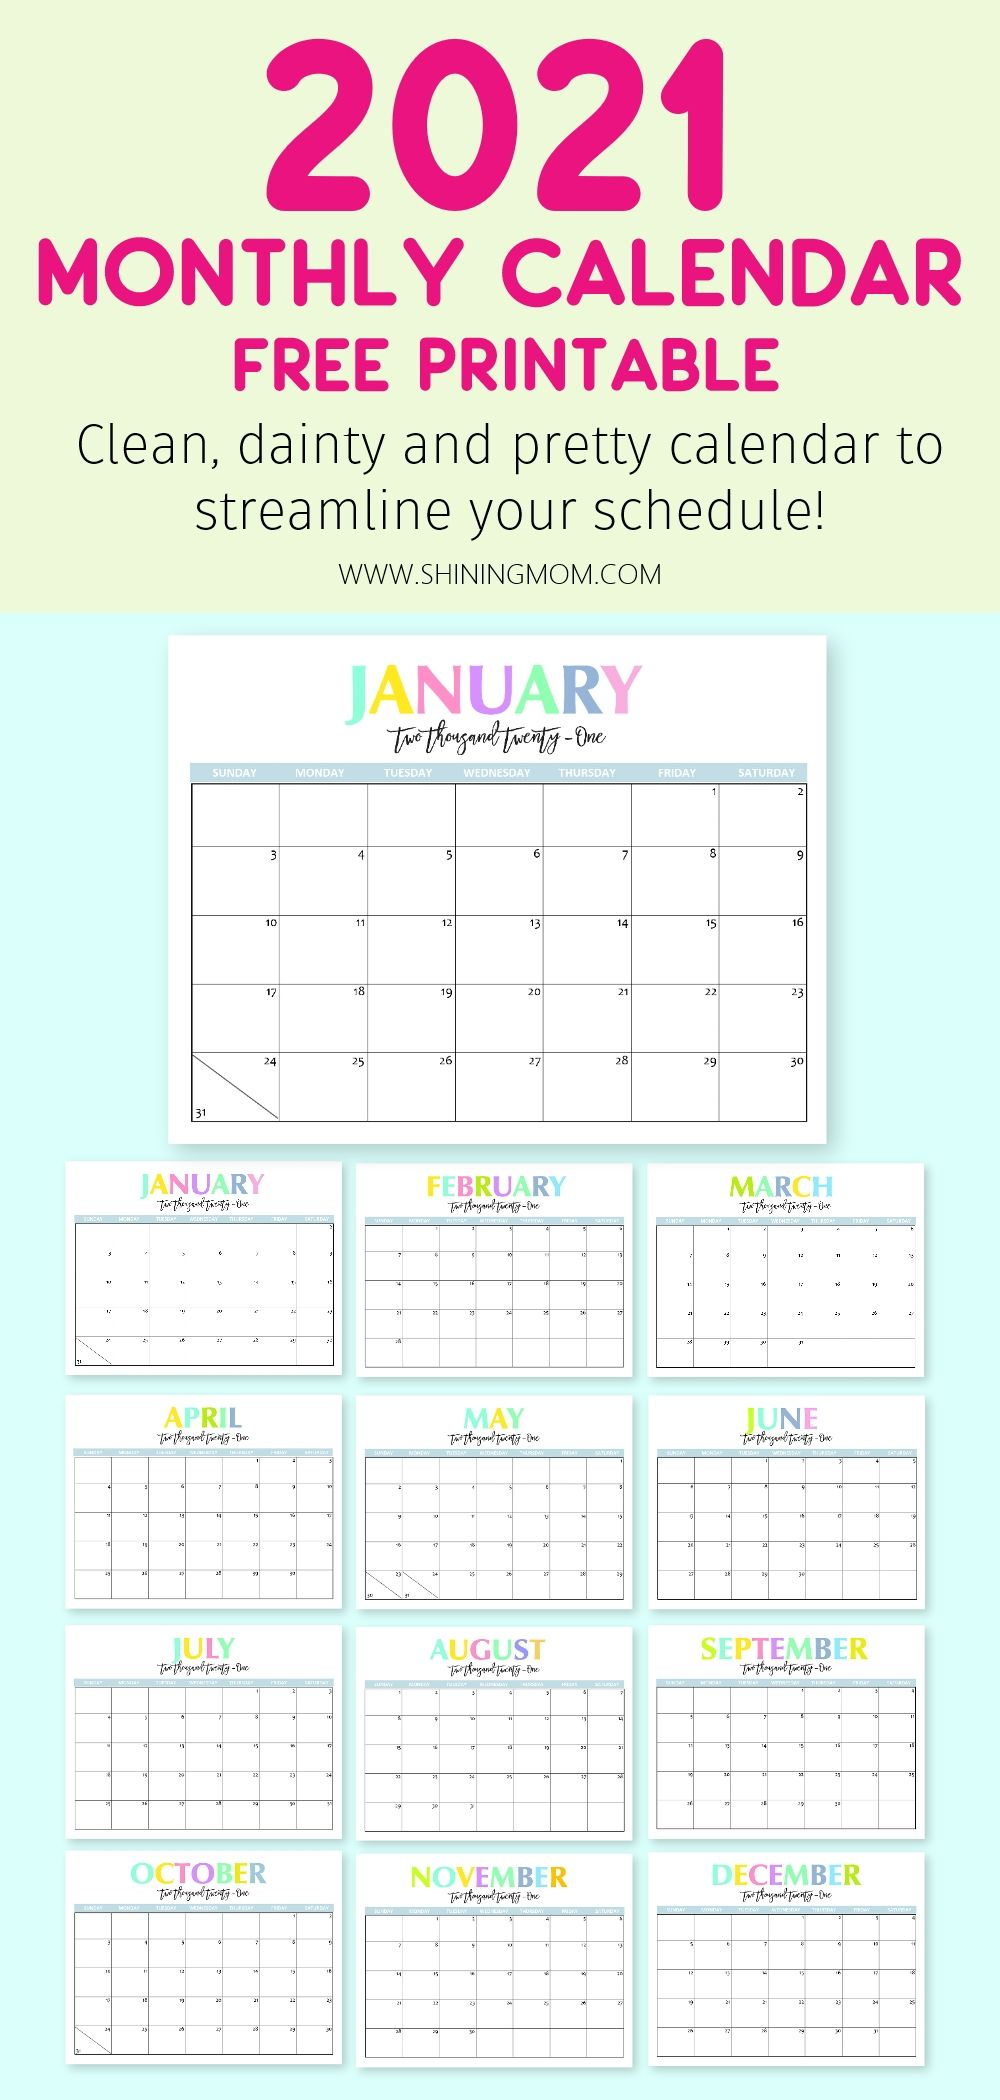 Free Printable 2021 Calendar: So Beautiful And Colorful! In